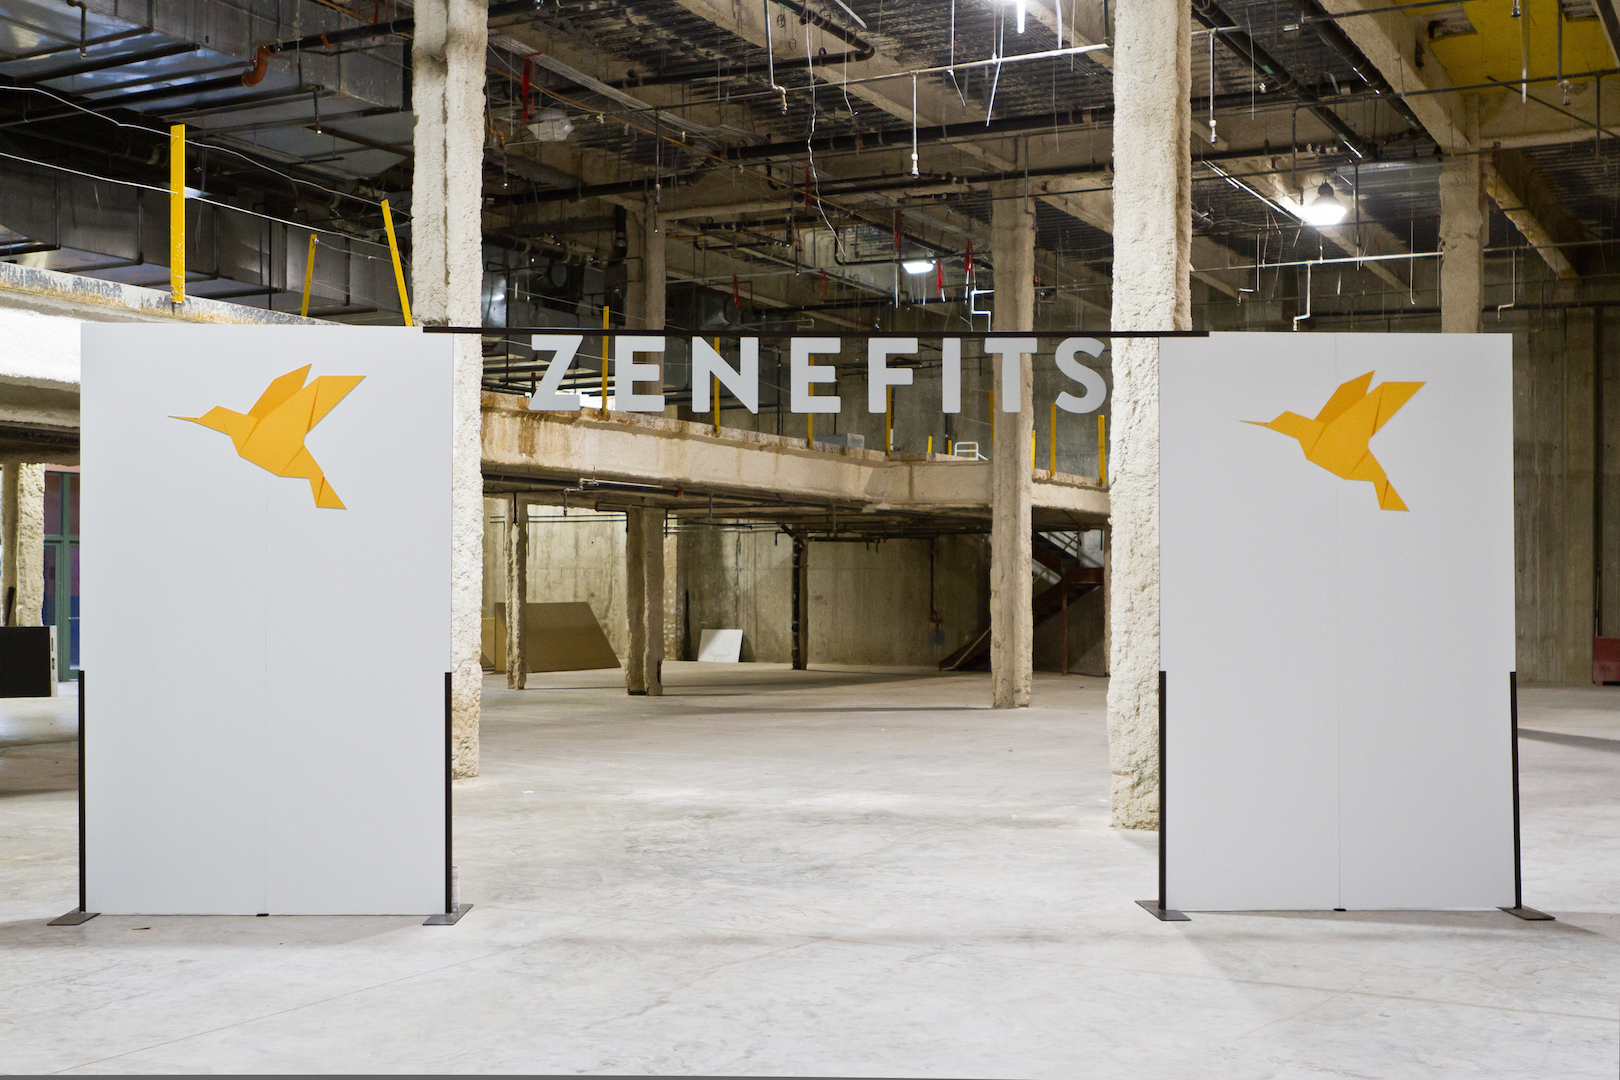 SEC fines Zenefits nearly $1 million for misleading investors